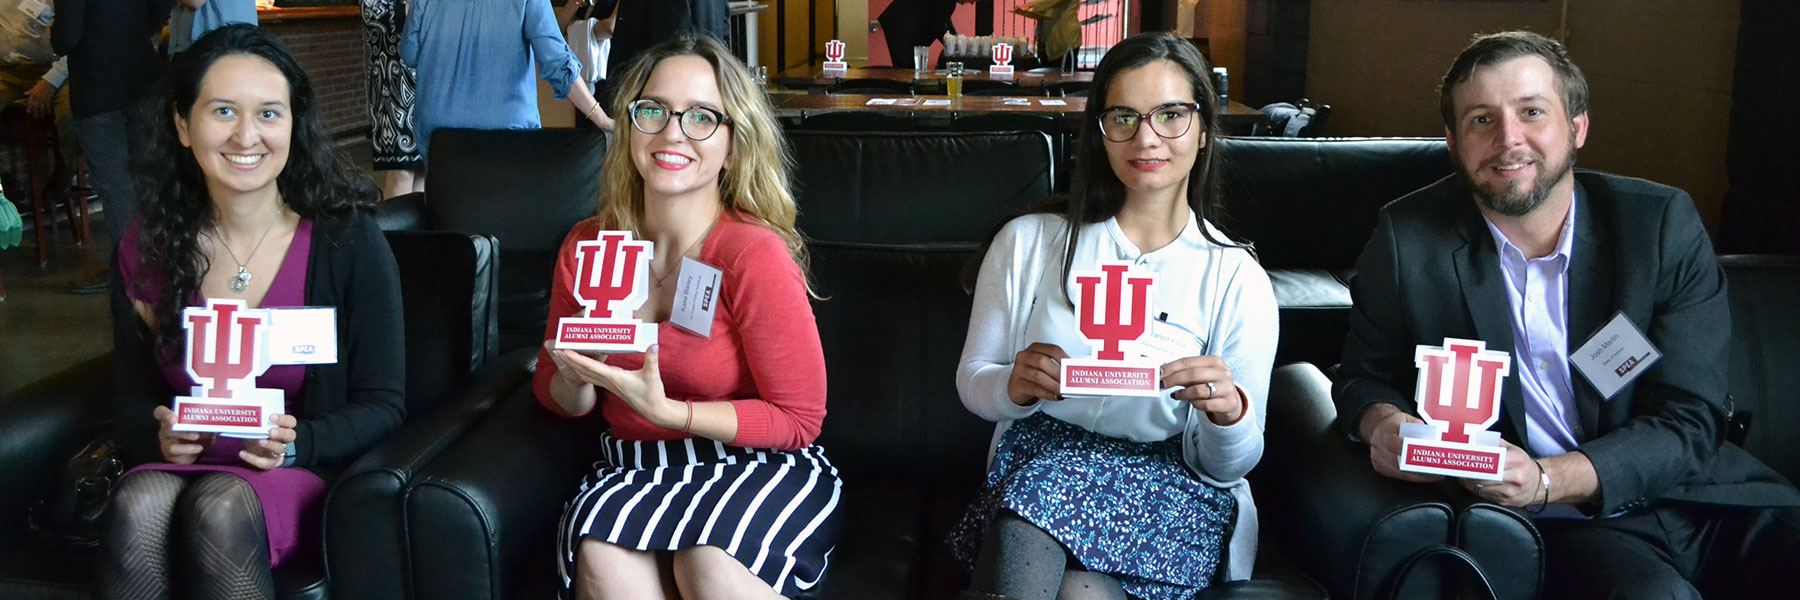 SPEA Alumni Association members smile and hold IU trident placards.